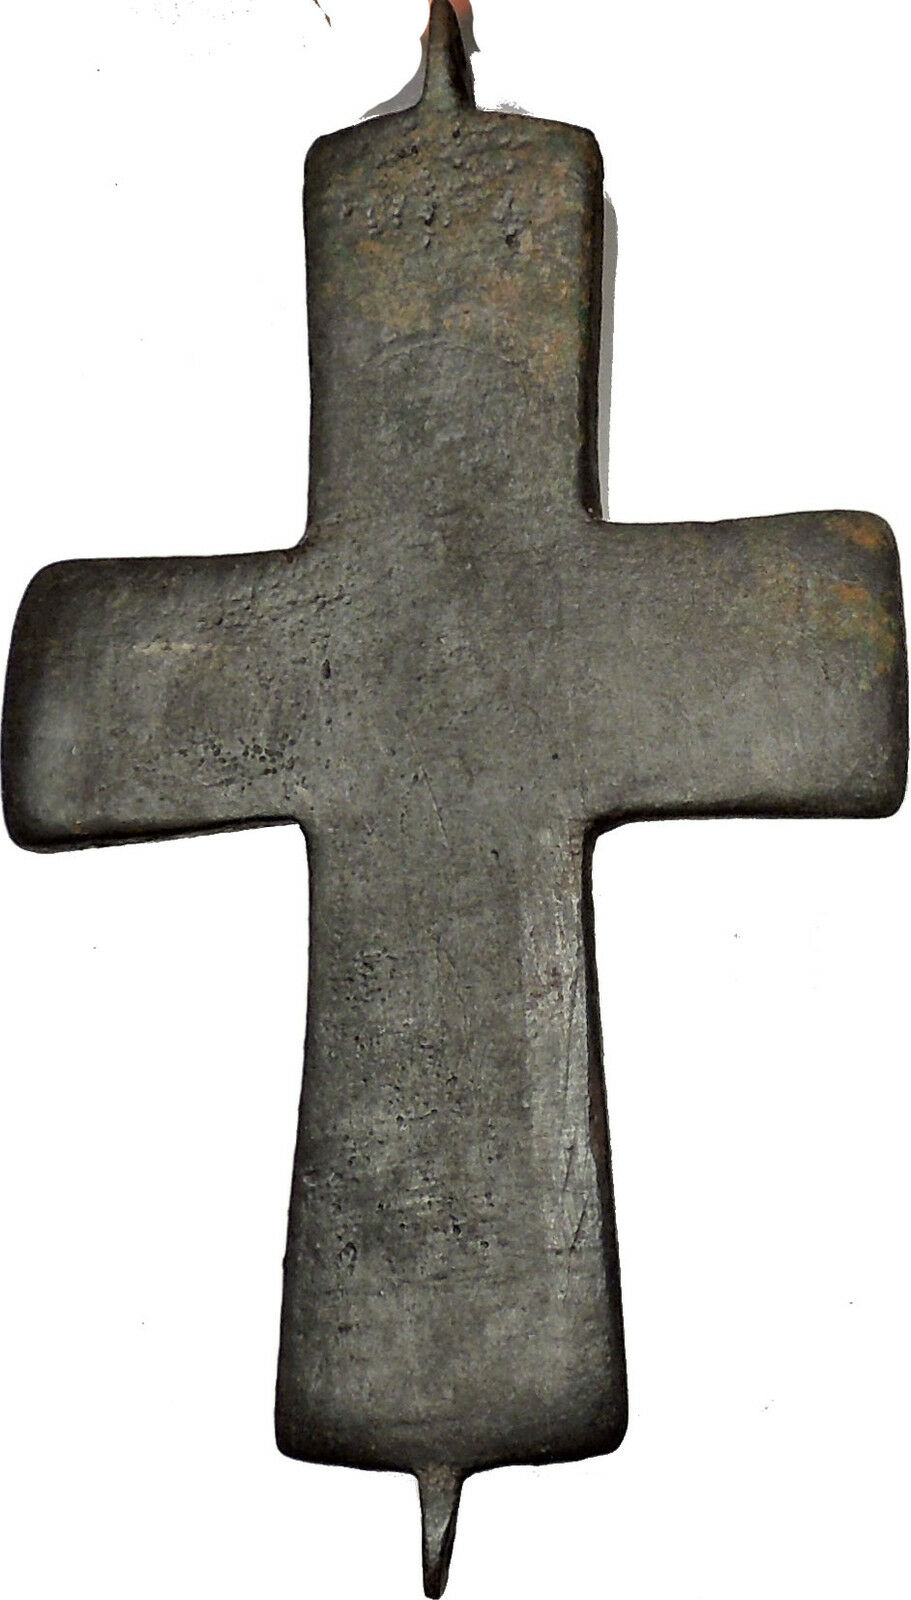 Bronze Ancient Christian Byzantine Cross Artifact circa 1000-1100AD i51456